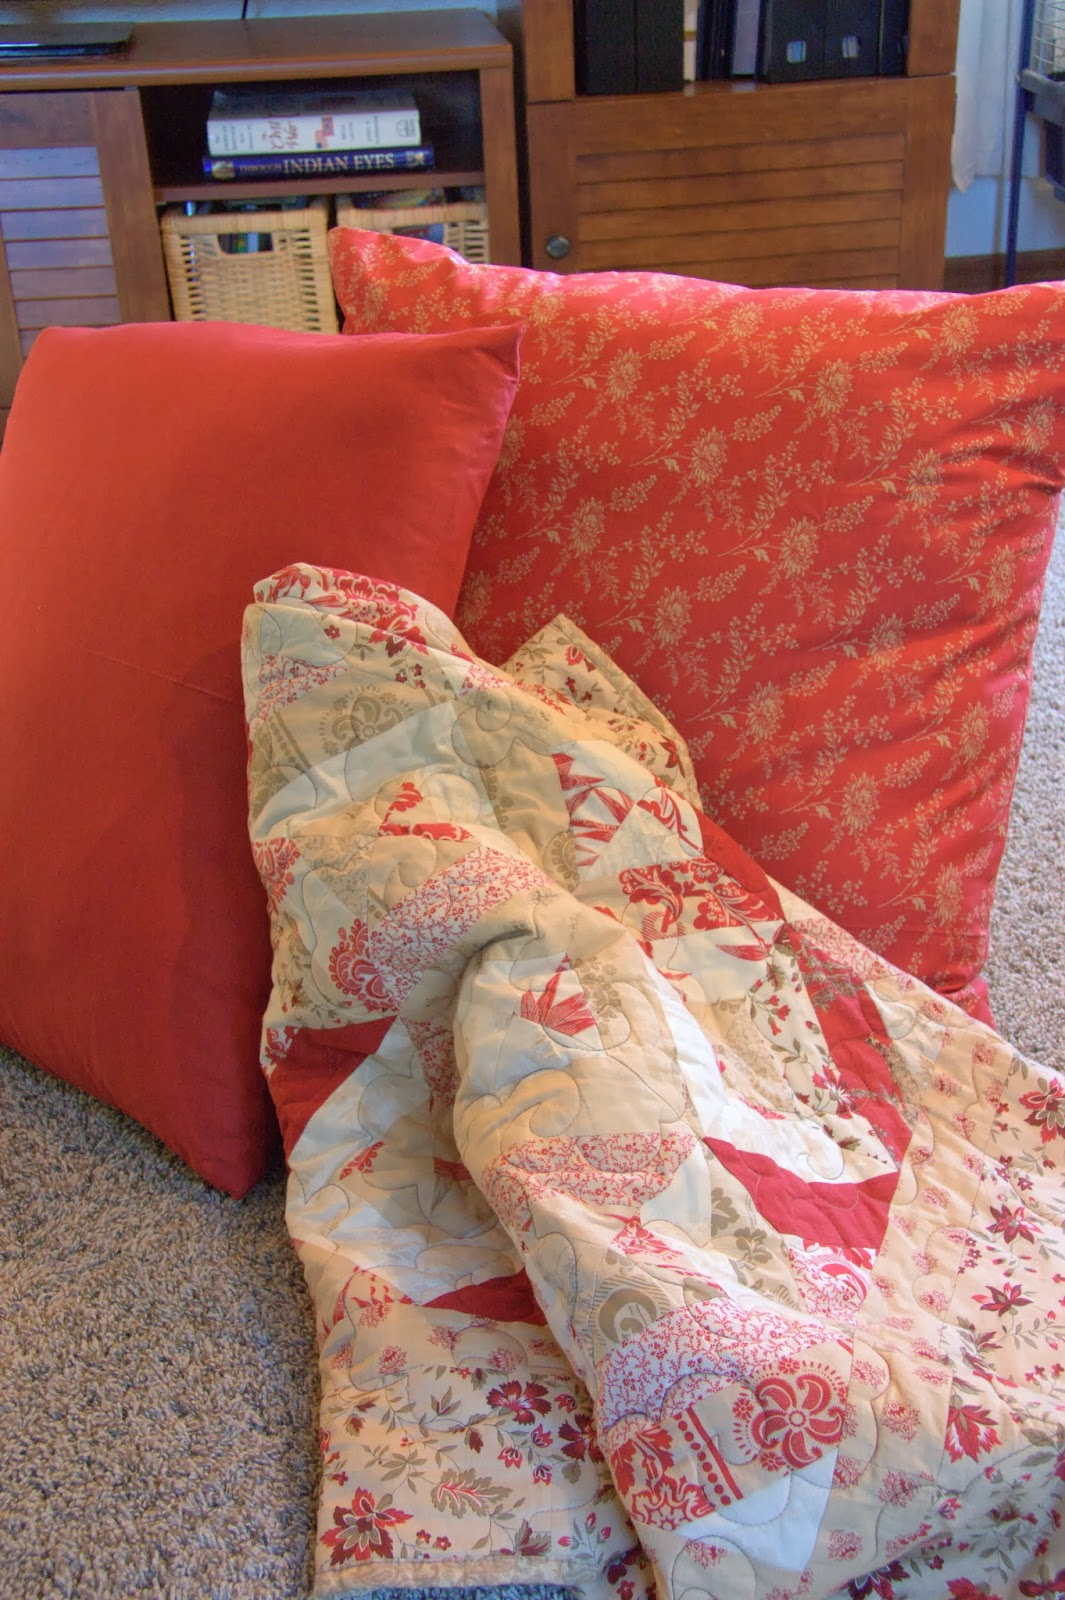 Easy To Make Floor Pillows : Super Simple Floor Pillows - home is where my story begins...